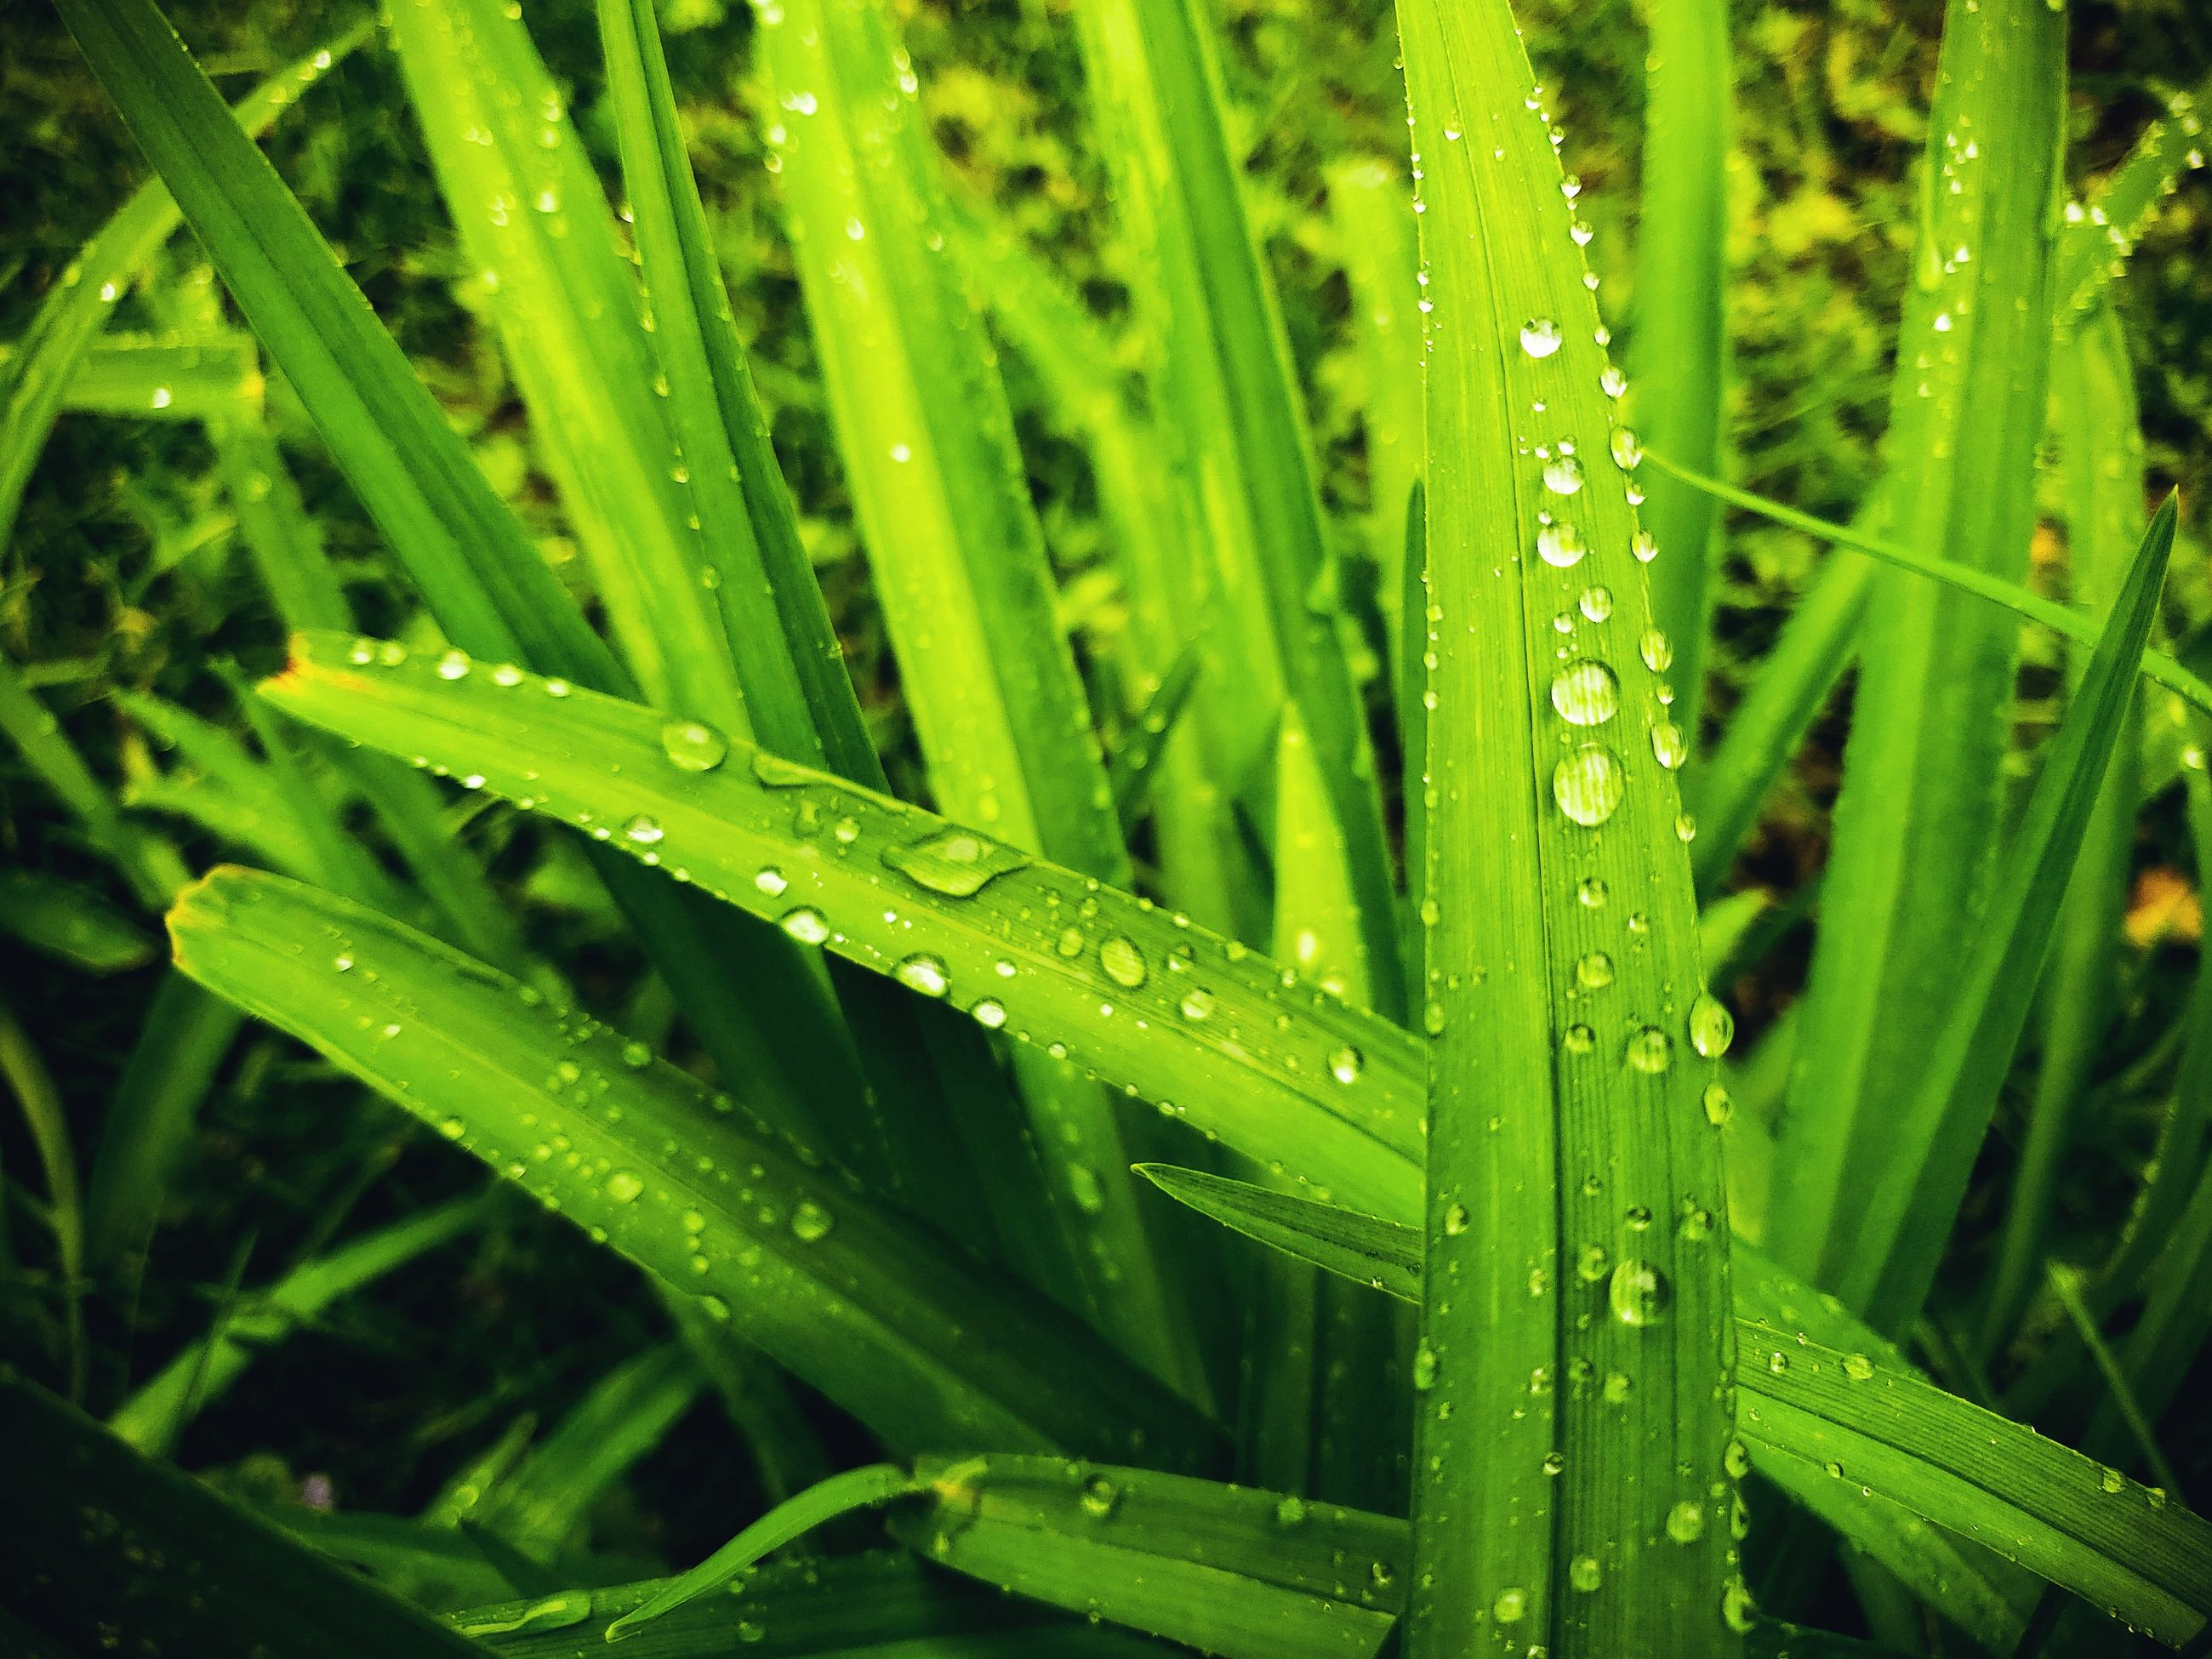 green color, drop, water, wet, plant, growth, grass, nature, blade of grass, rain, no people, freshness, close-up, beauty in nature, day, leaf, plant part, outdoors, raindrop, dew, rainy season, purity